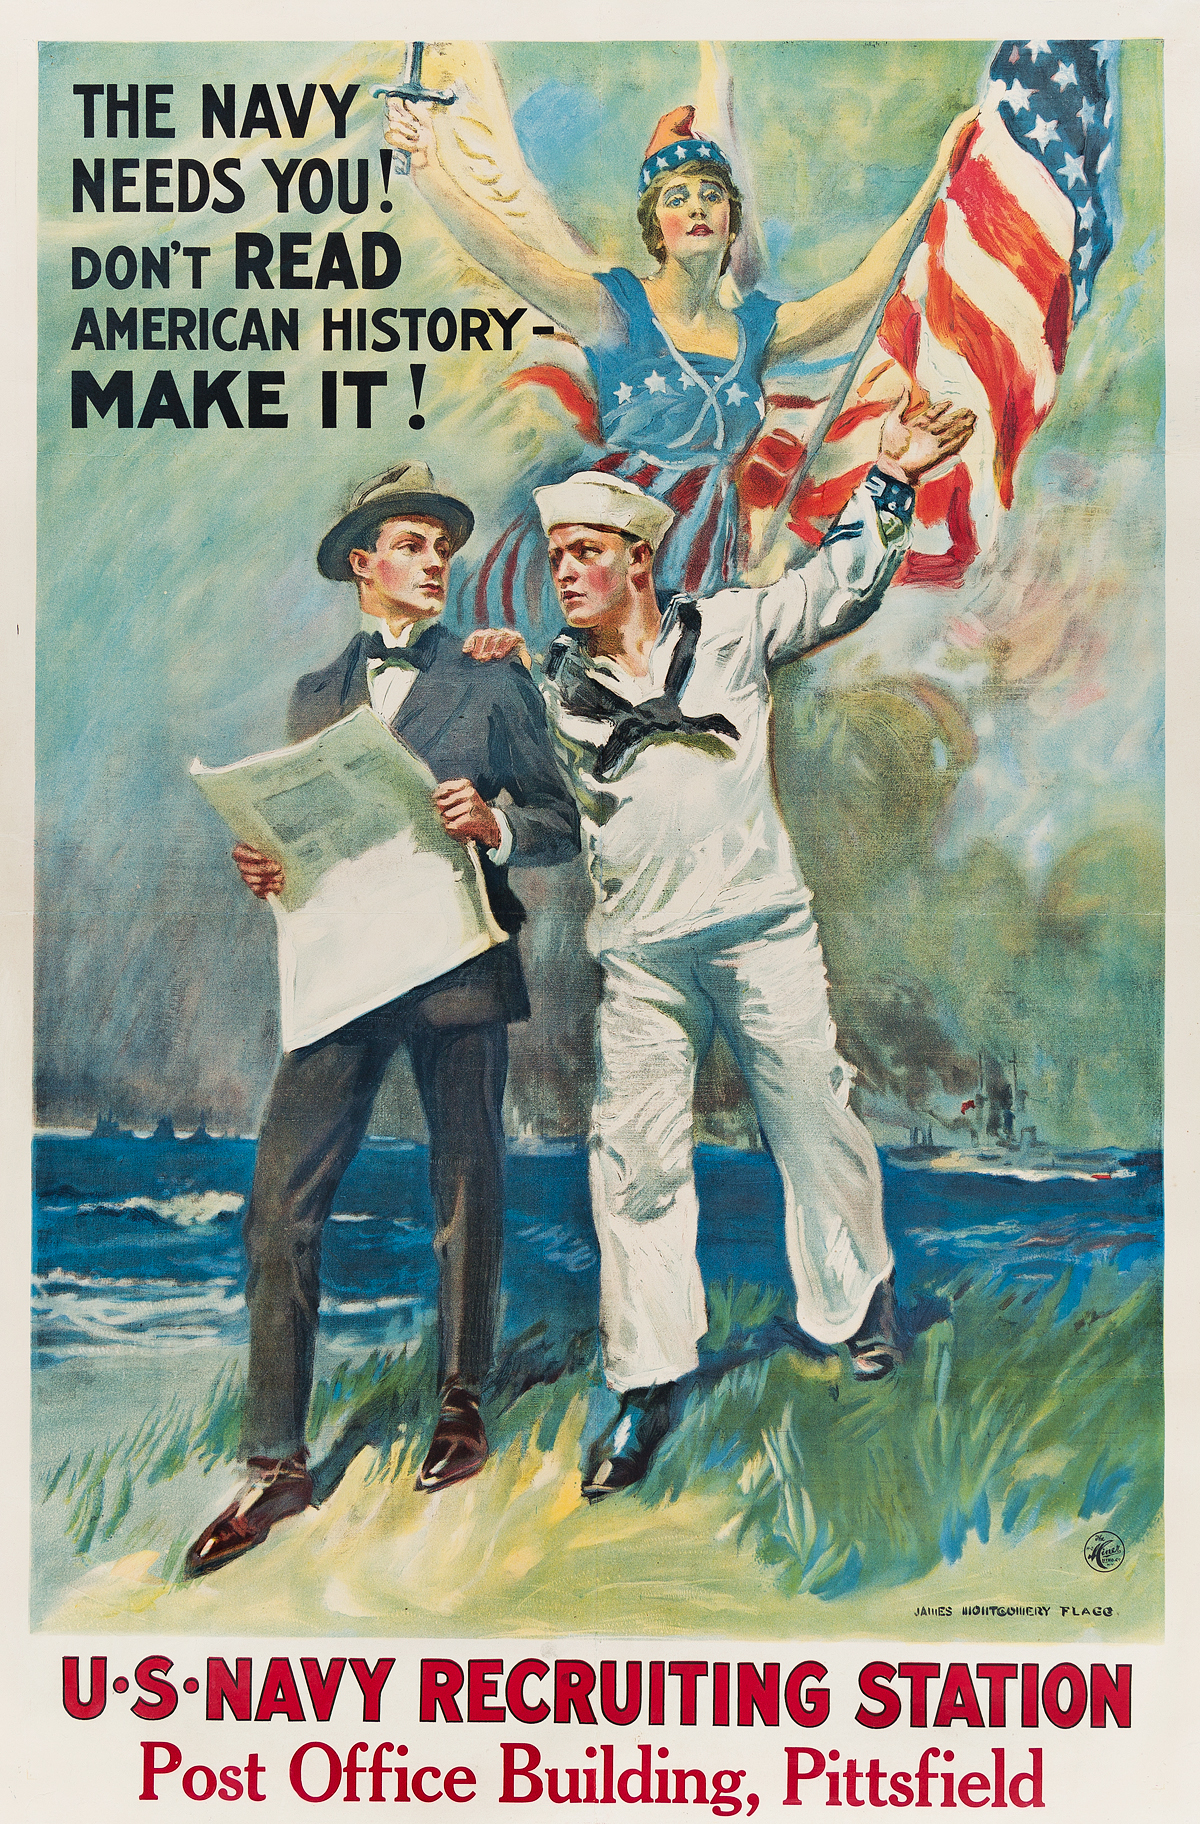 JAMES-MONTGOMERY-FLAGG-(1870-1960)-THE-NAVY-NEEDS-YOU-DONT-READ-AMERICAN-HISTORY---MAKE-IT-1917-42x28-inches-108x71-cm-The-HC